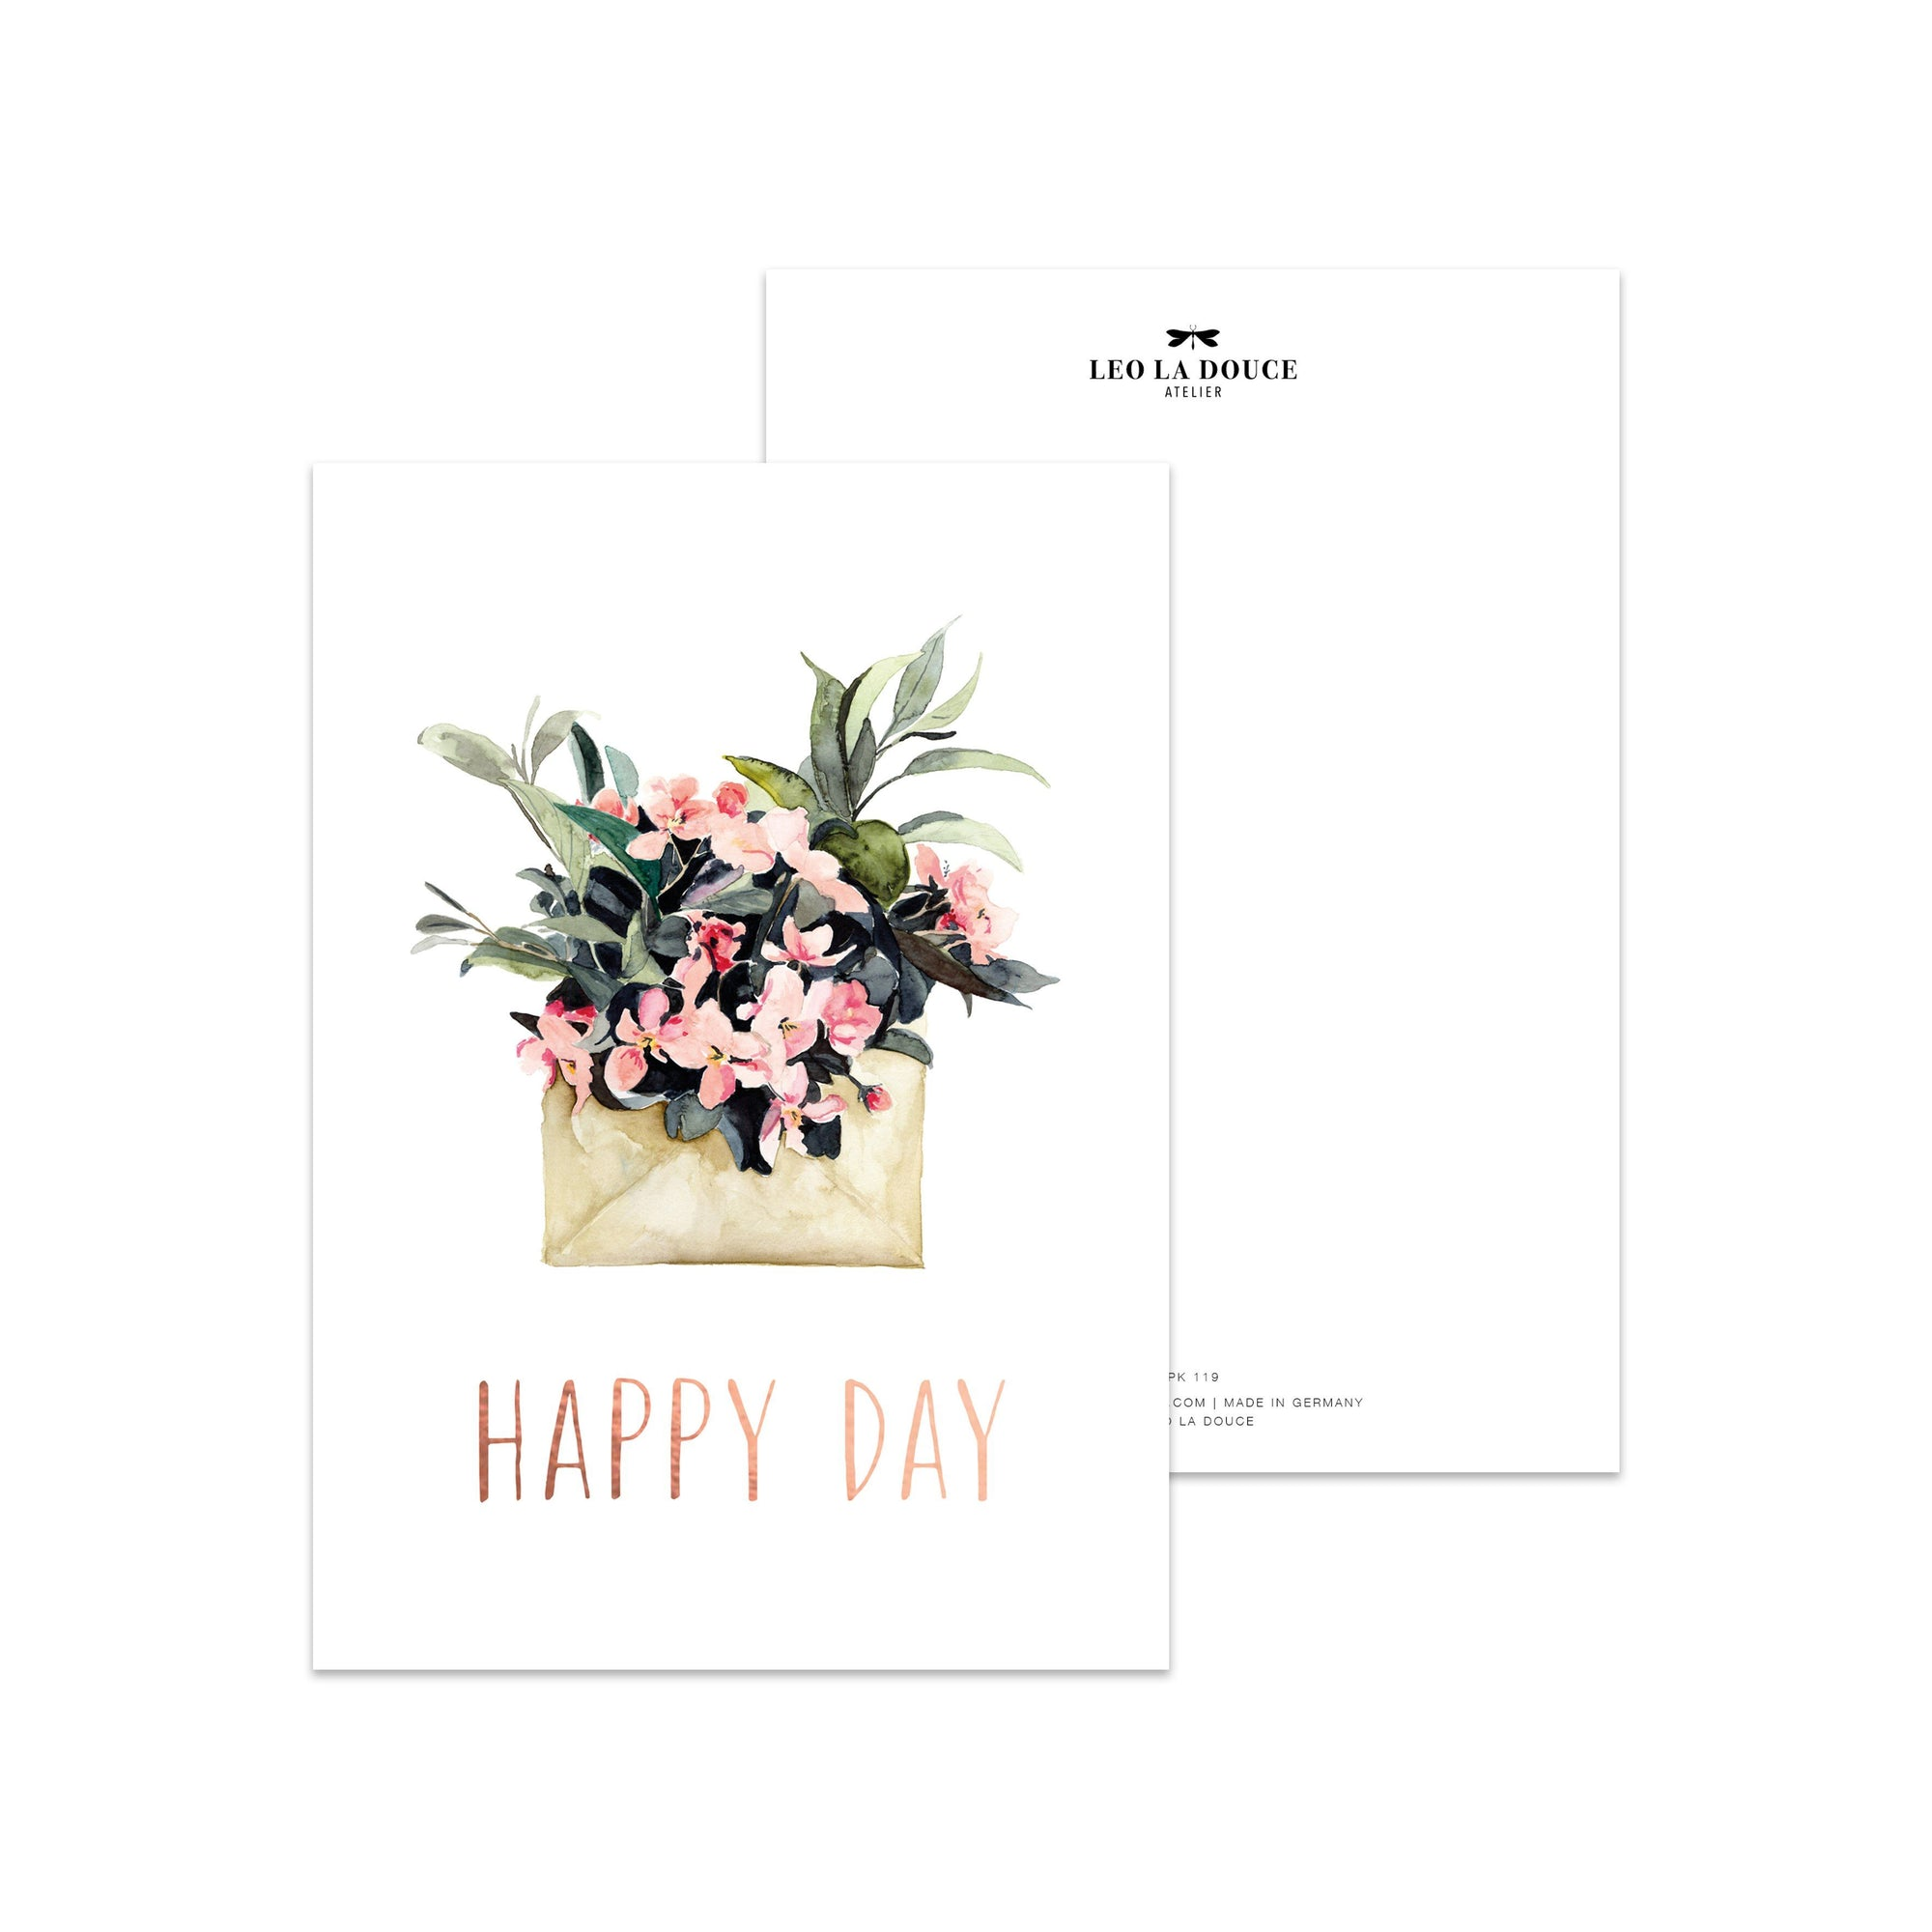 Postkarte - HAPPY DAY Postkarte Leo la Douce